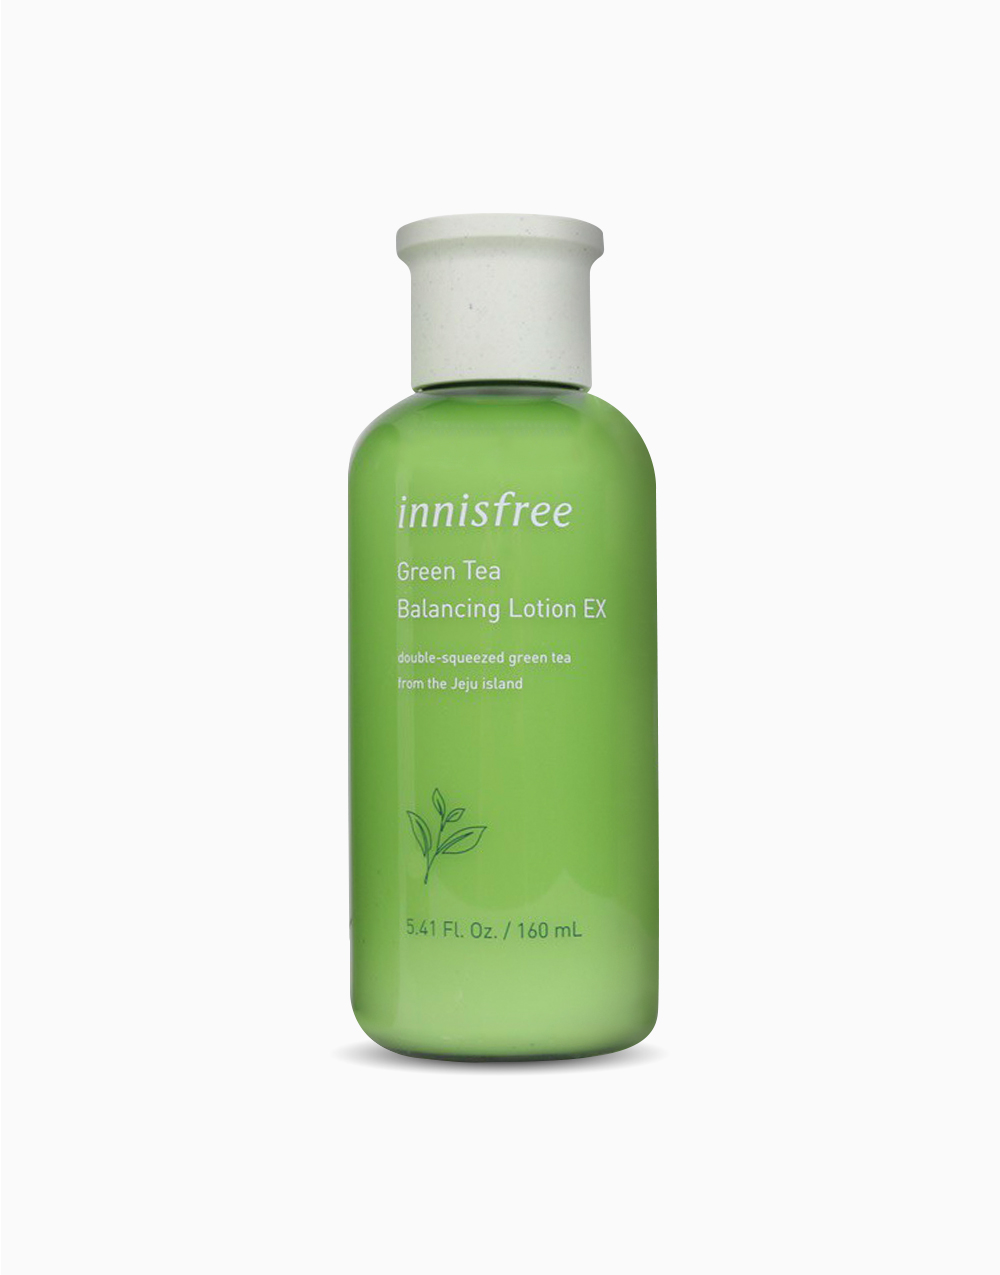 Green Tea Balancing Lotion EX (2019 Packaging) by Innisfree